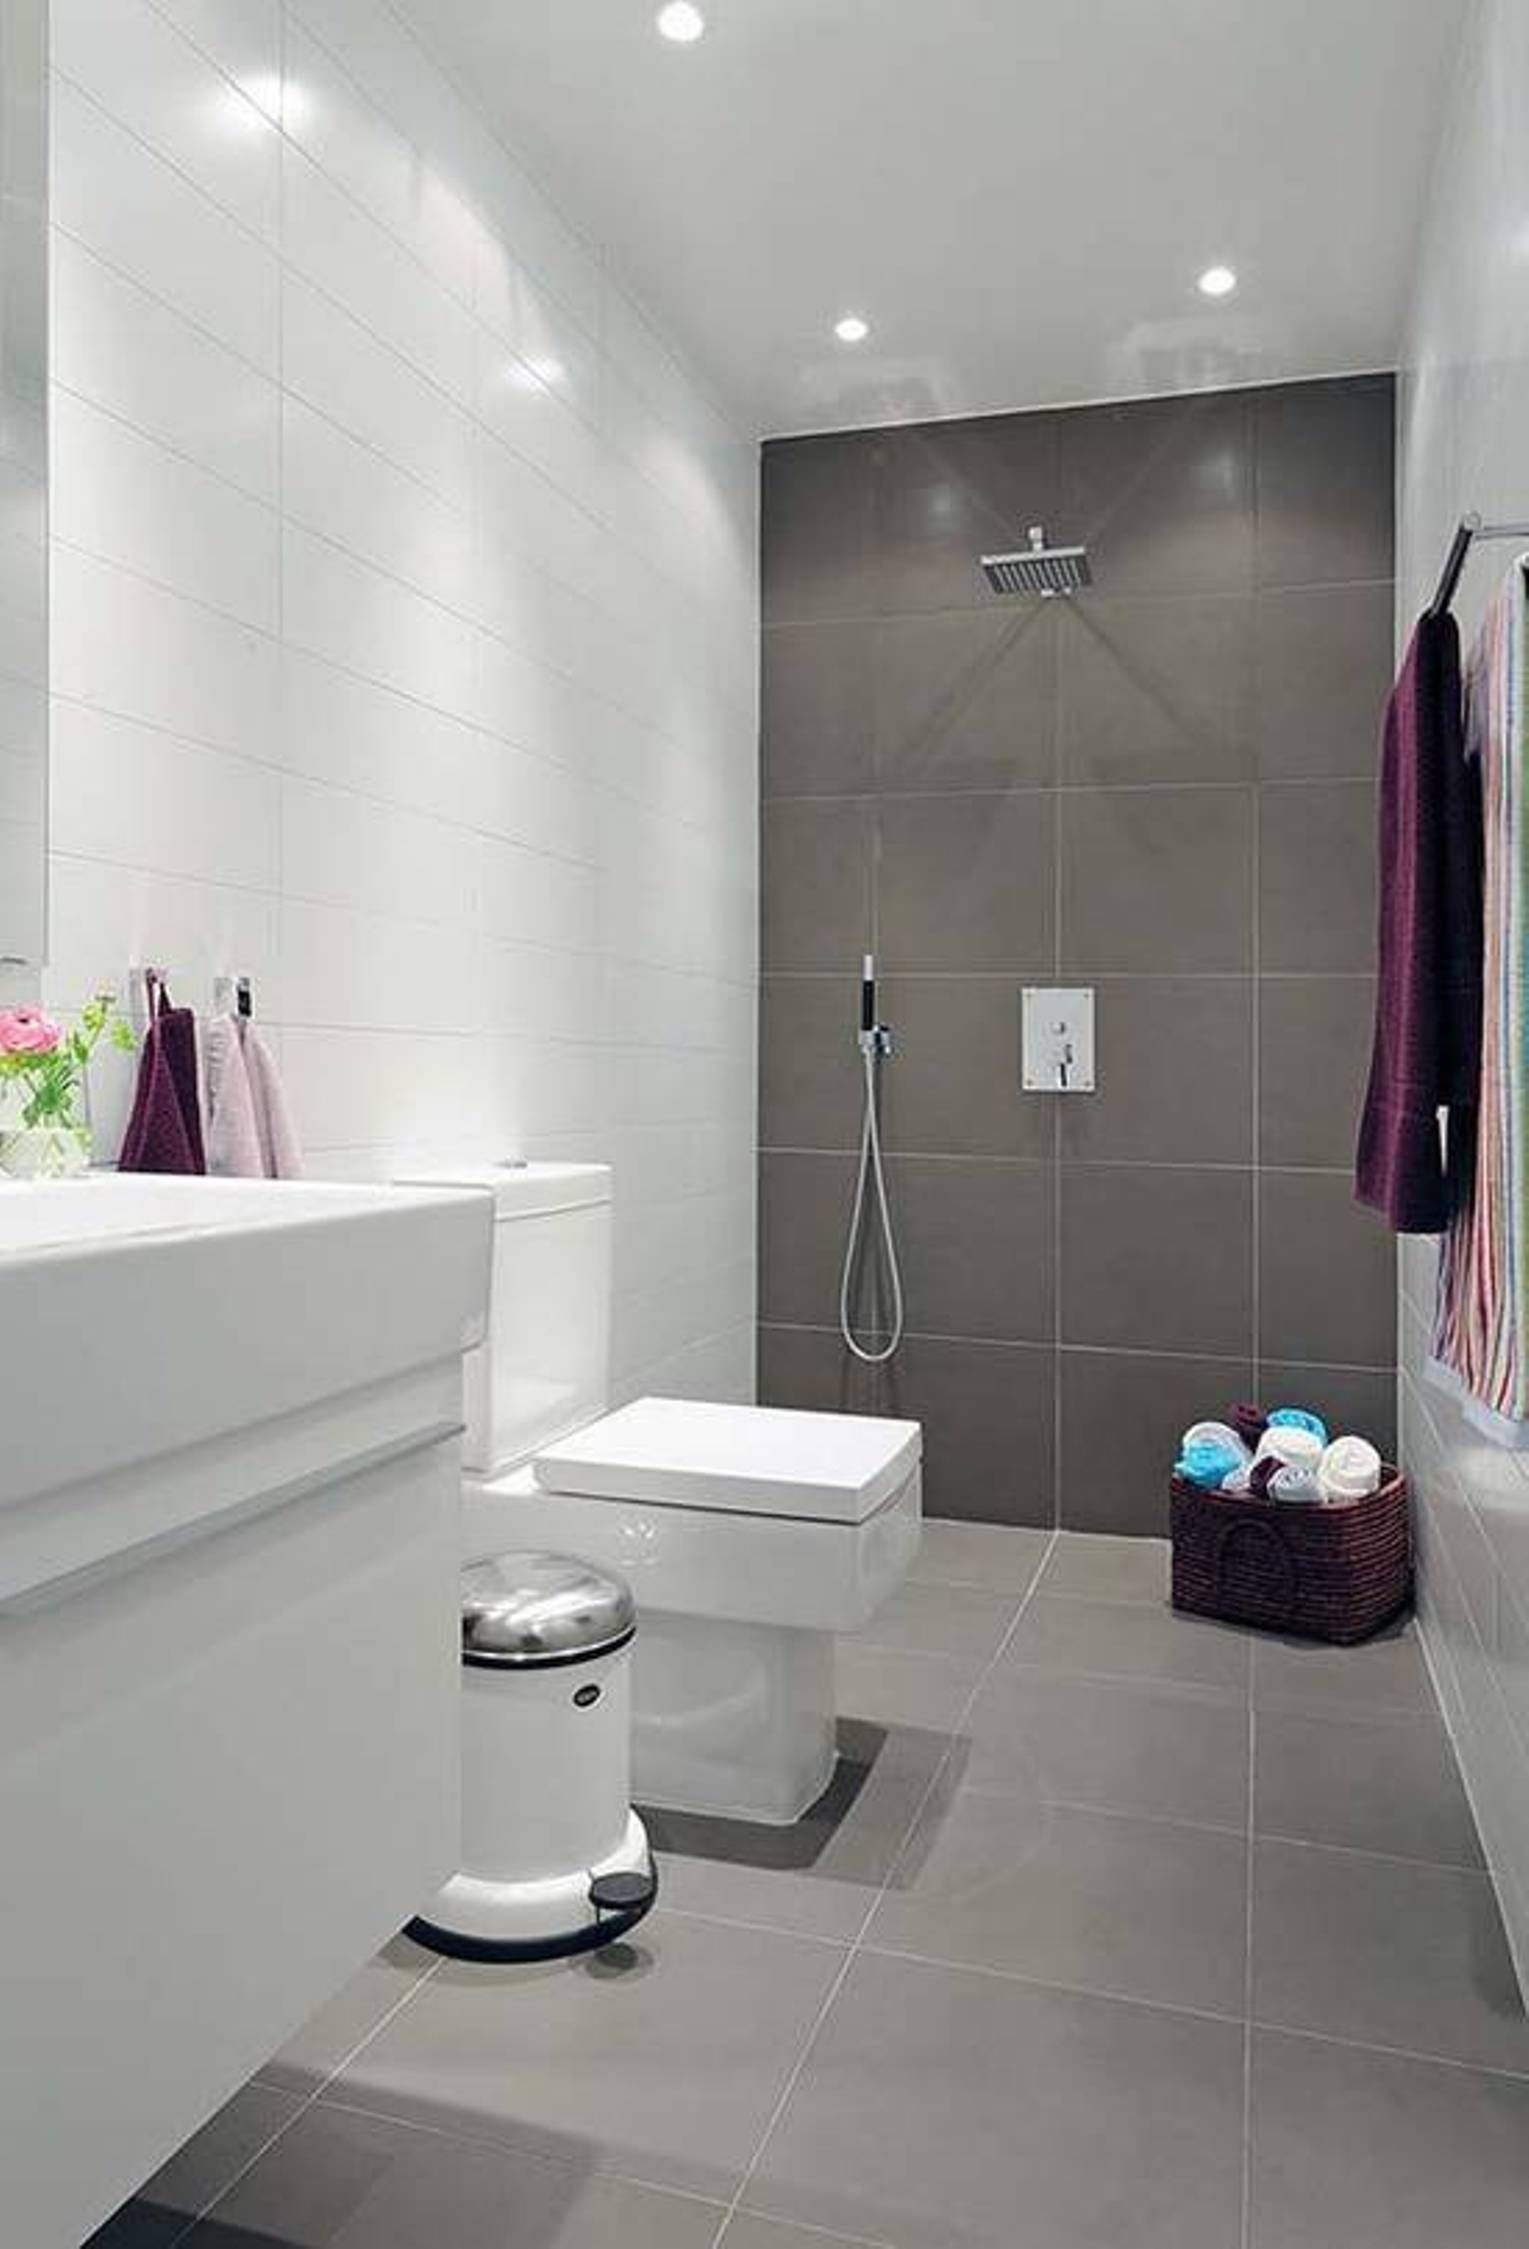 Awesome 10 Bathroom Color Trends 2016 Some Of The Cutest And Exciting Too For You 10 In 2020 Bathroom Design Small Modern Small Bathroom Tiles Bathroom Design Small